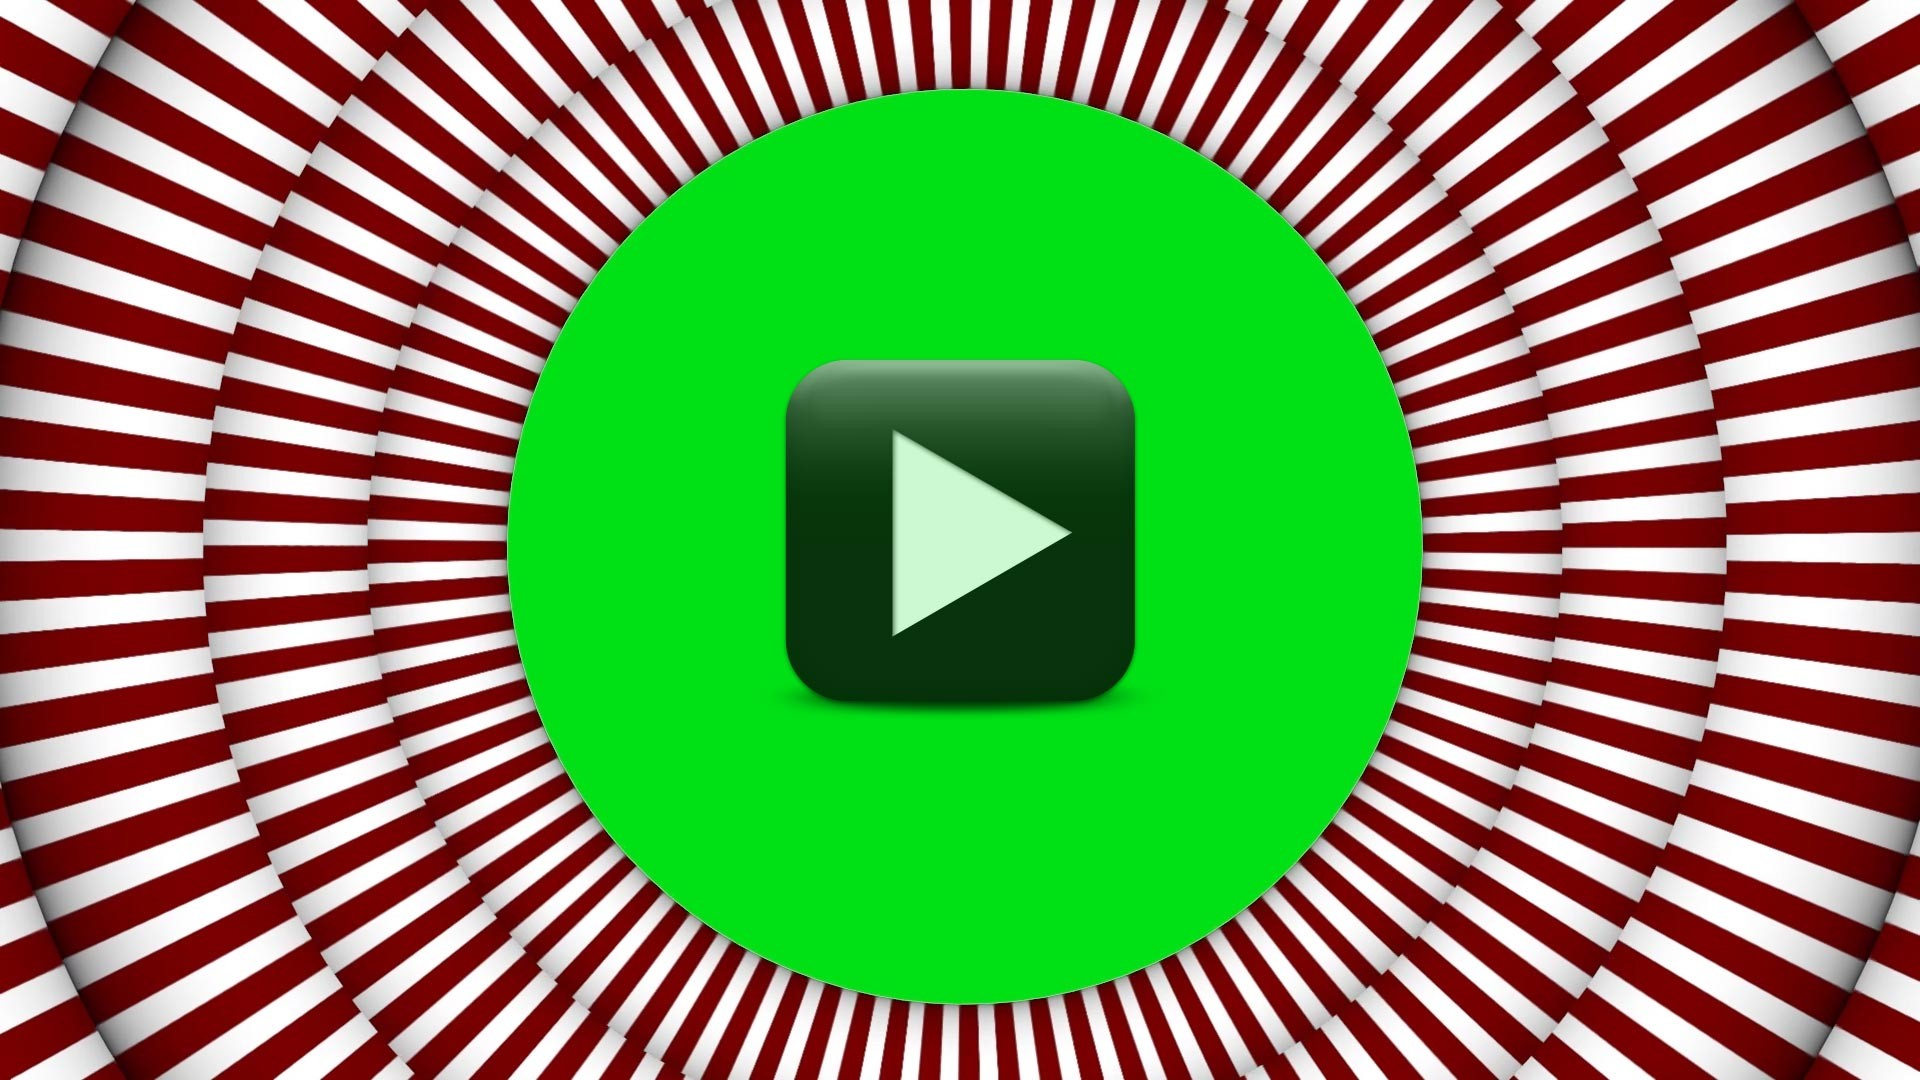 Hypnotic Circle Background-Green Screen Hypnosis Animation Frame | All  Design Creative